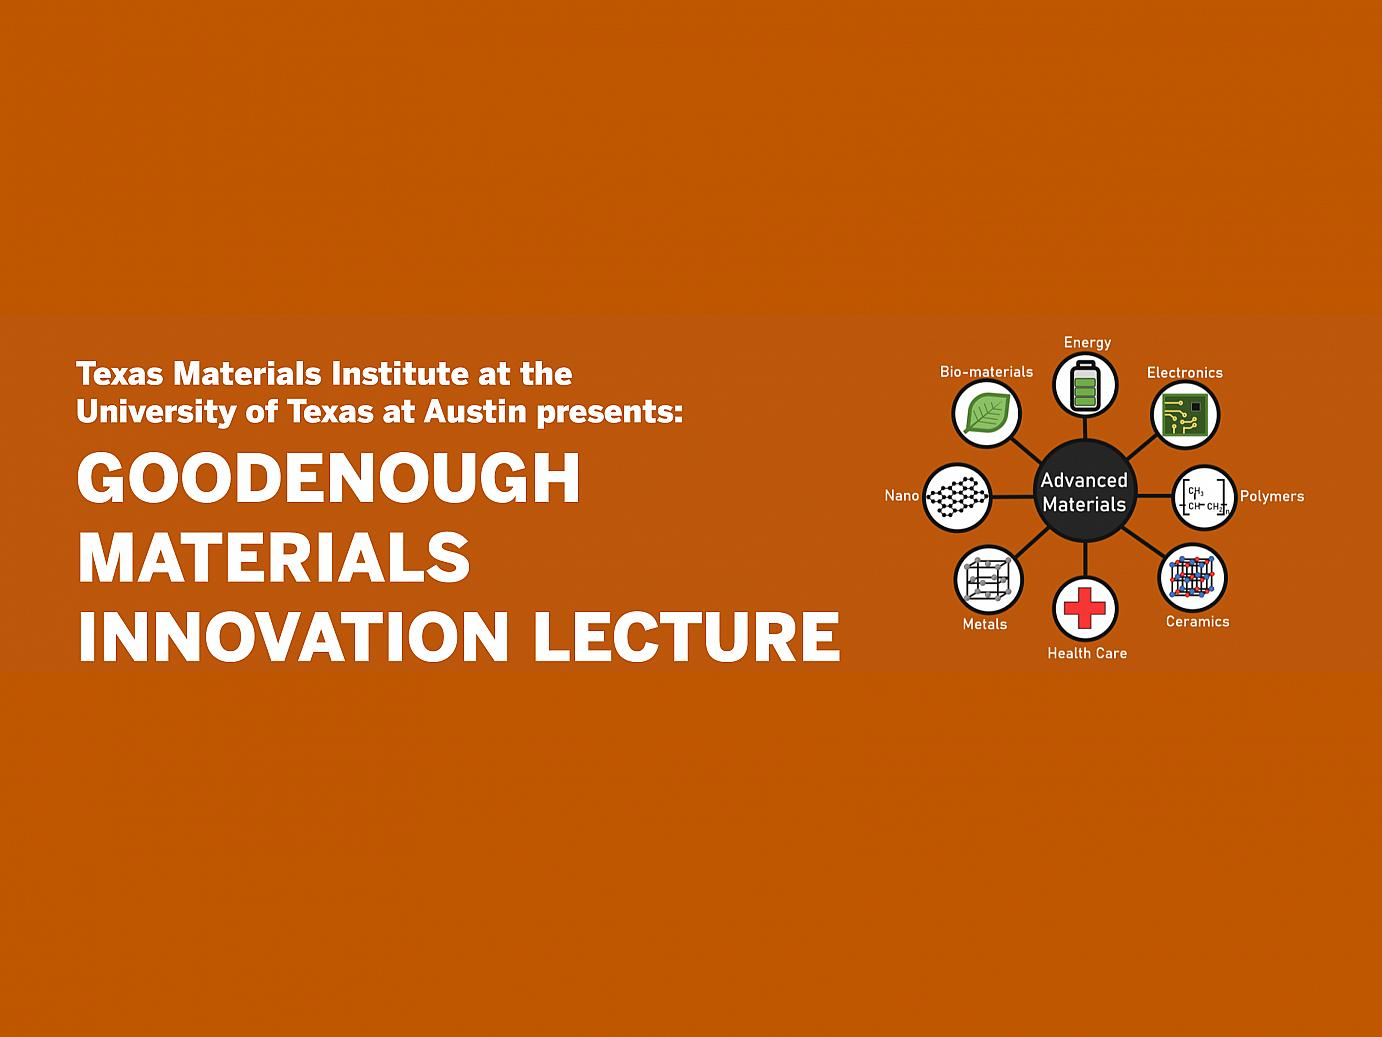 flyer image for lecture includes title and graphic